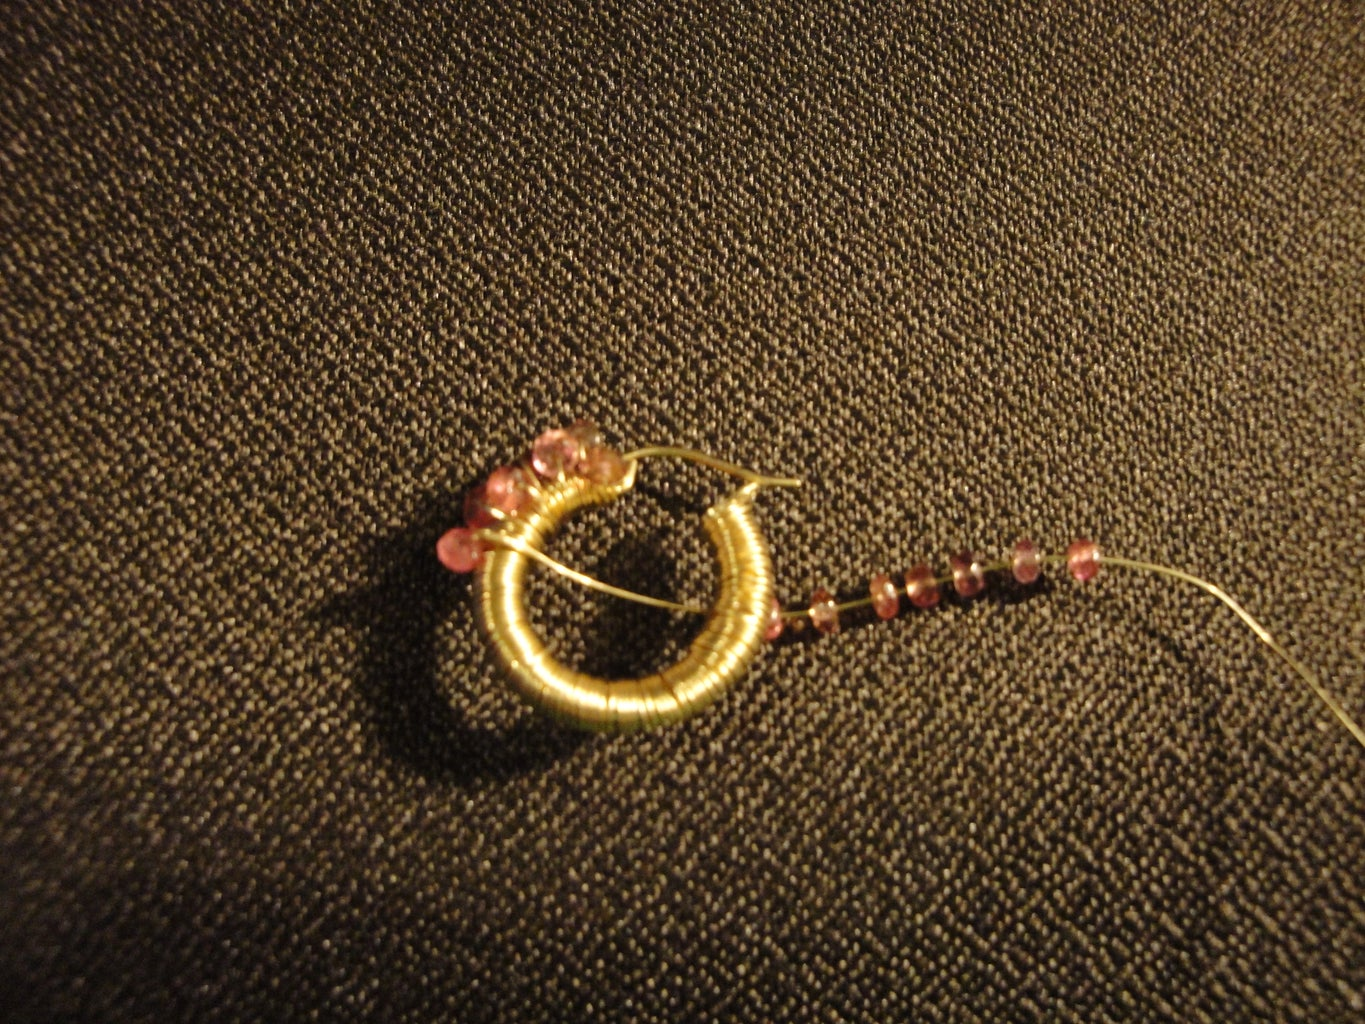 Wrapping the Tourmaline Beads